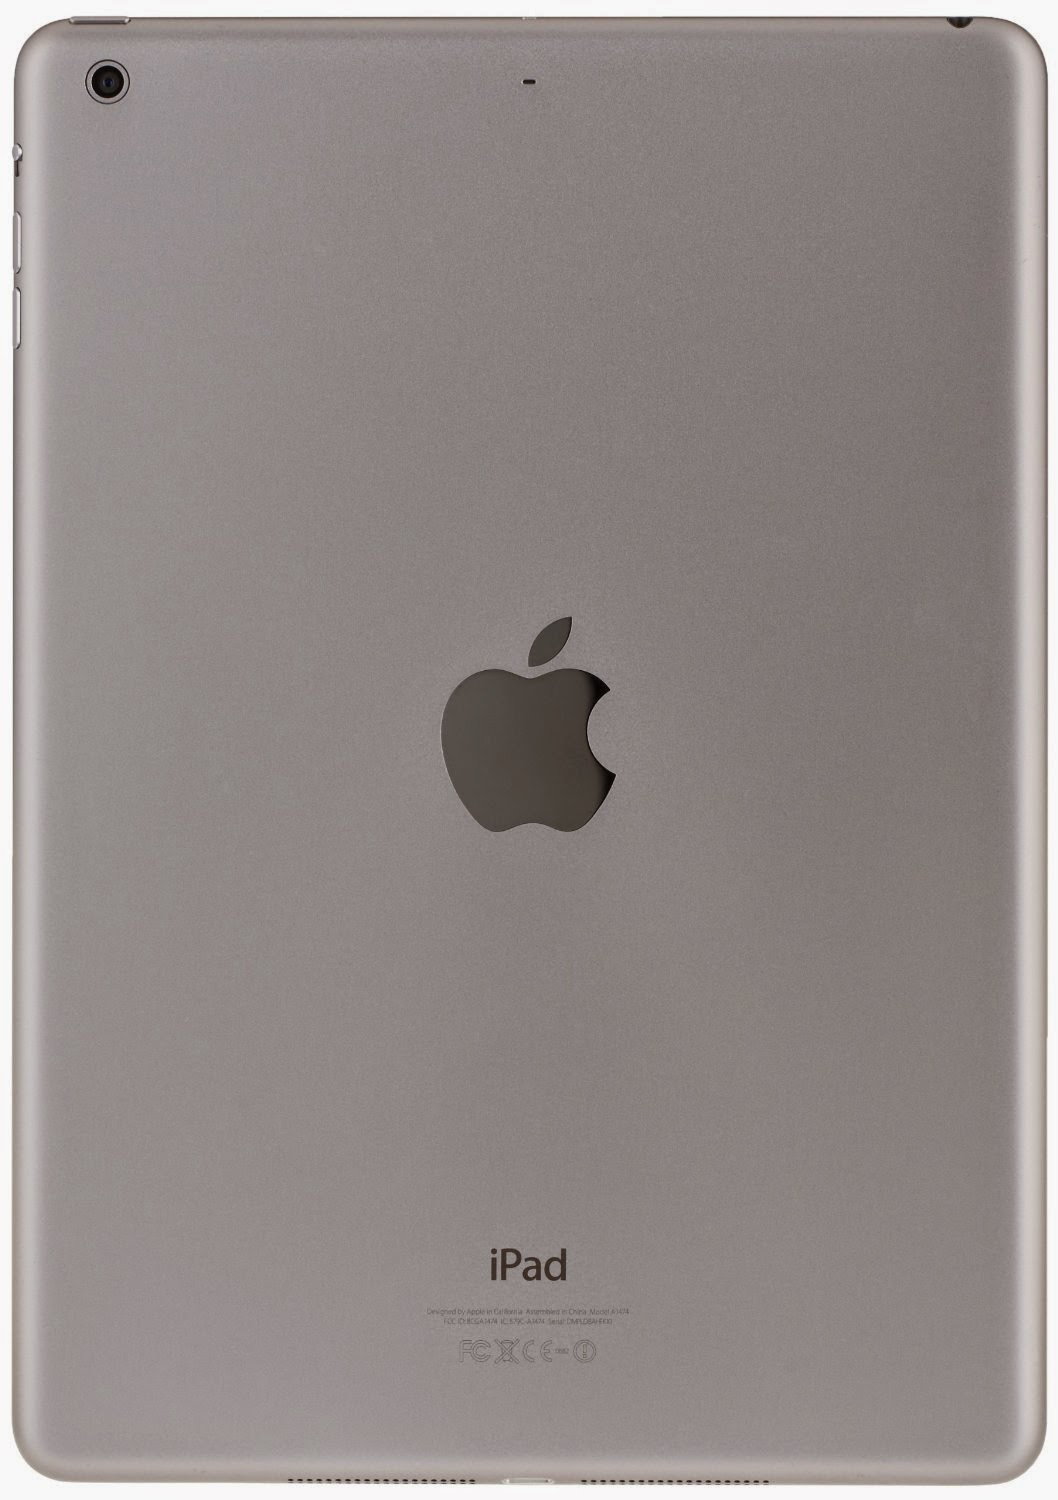 Apple iPad Air ME898LL/A (128GB, Wi-Fi, Black with Space Gray) review